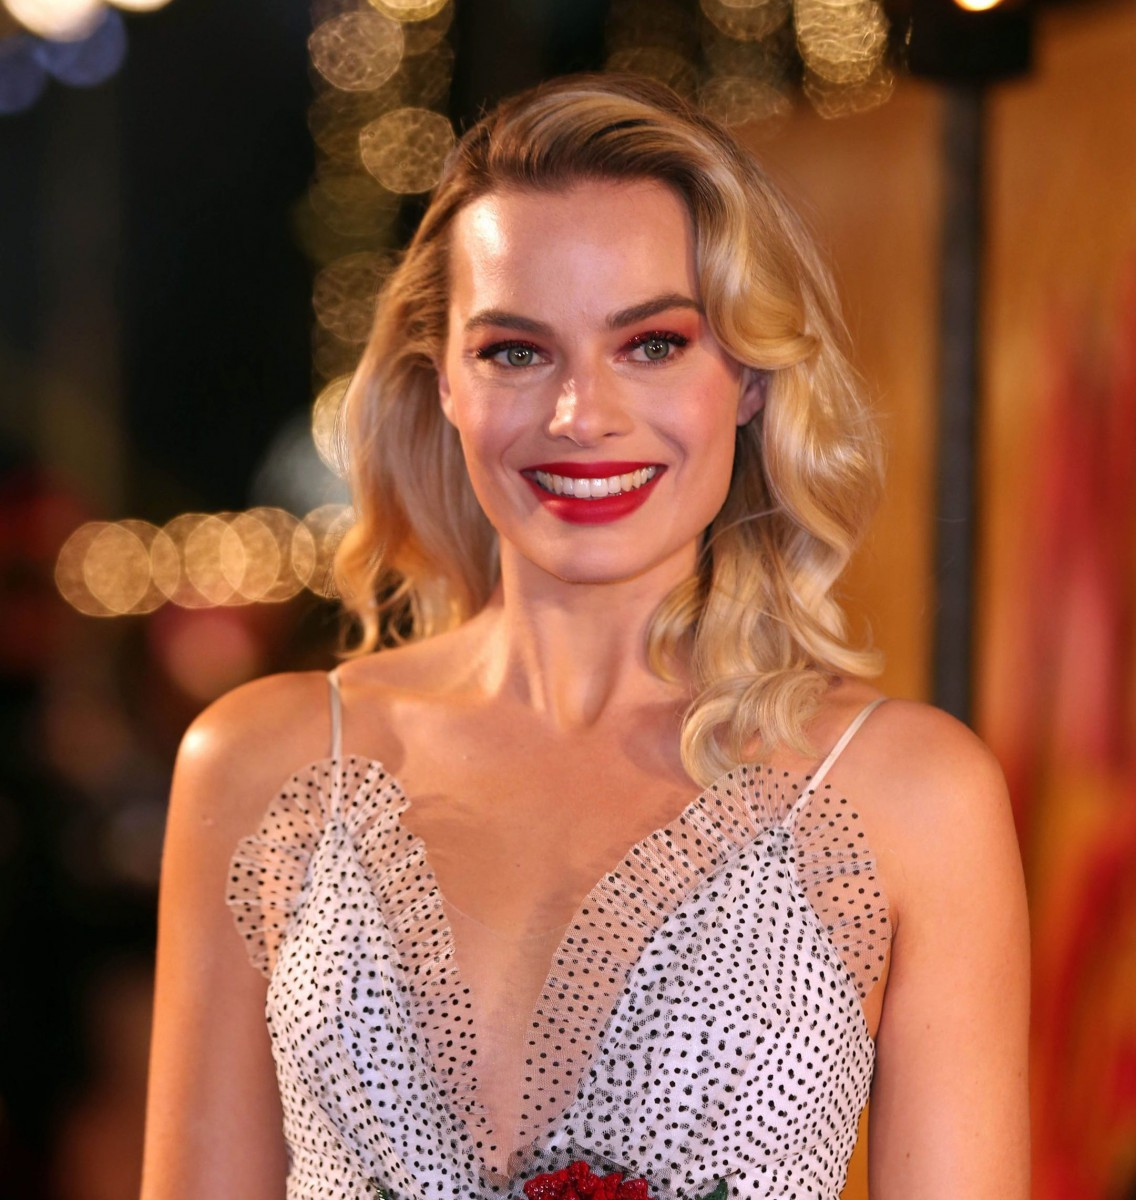 Hollywood star Margot Robbie got a love for football after living in London